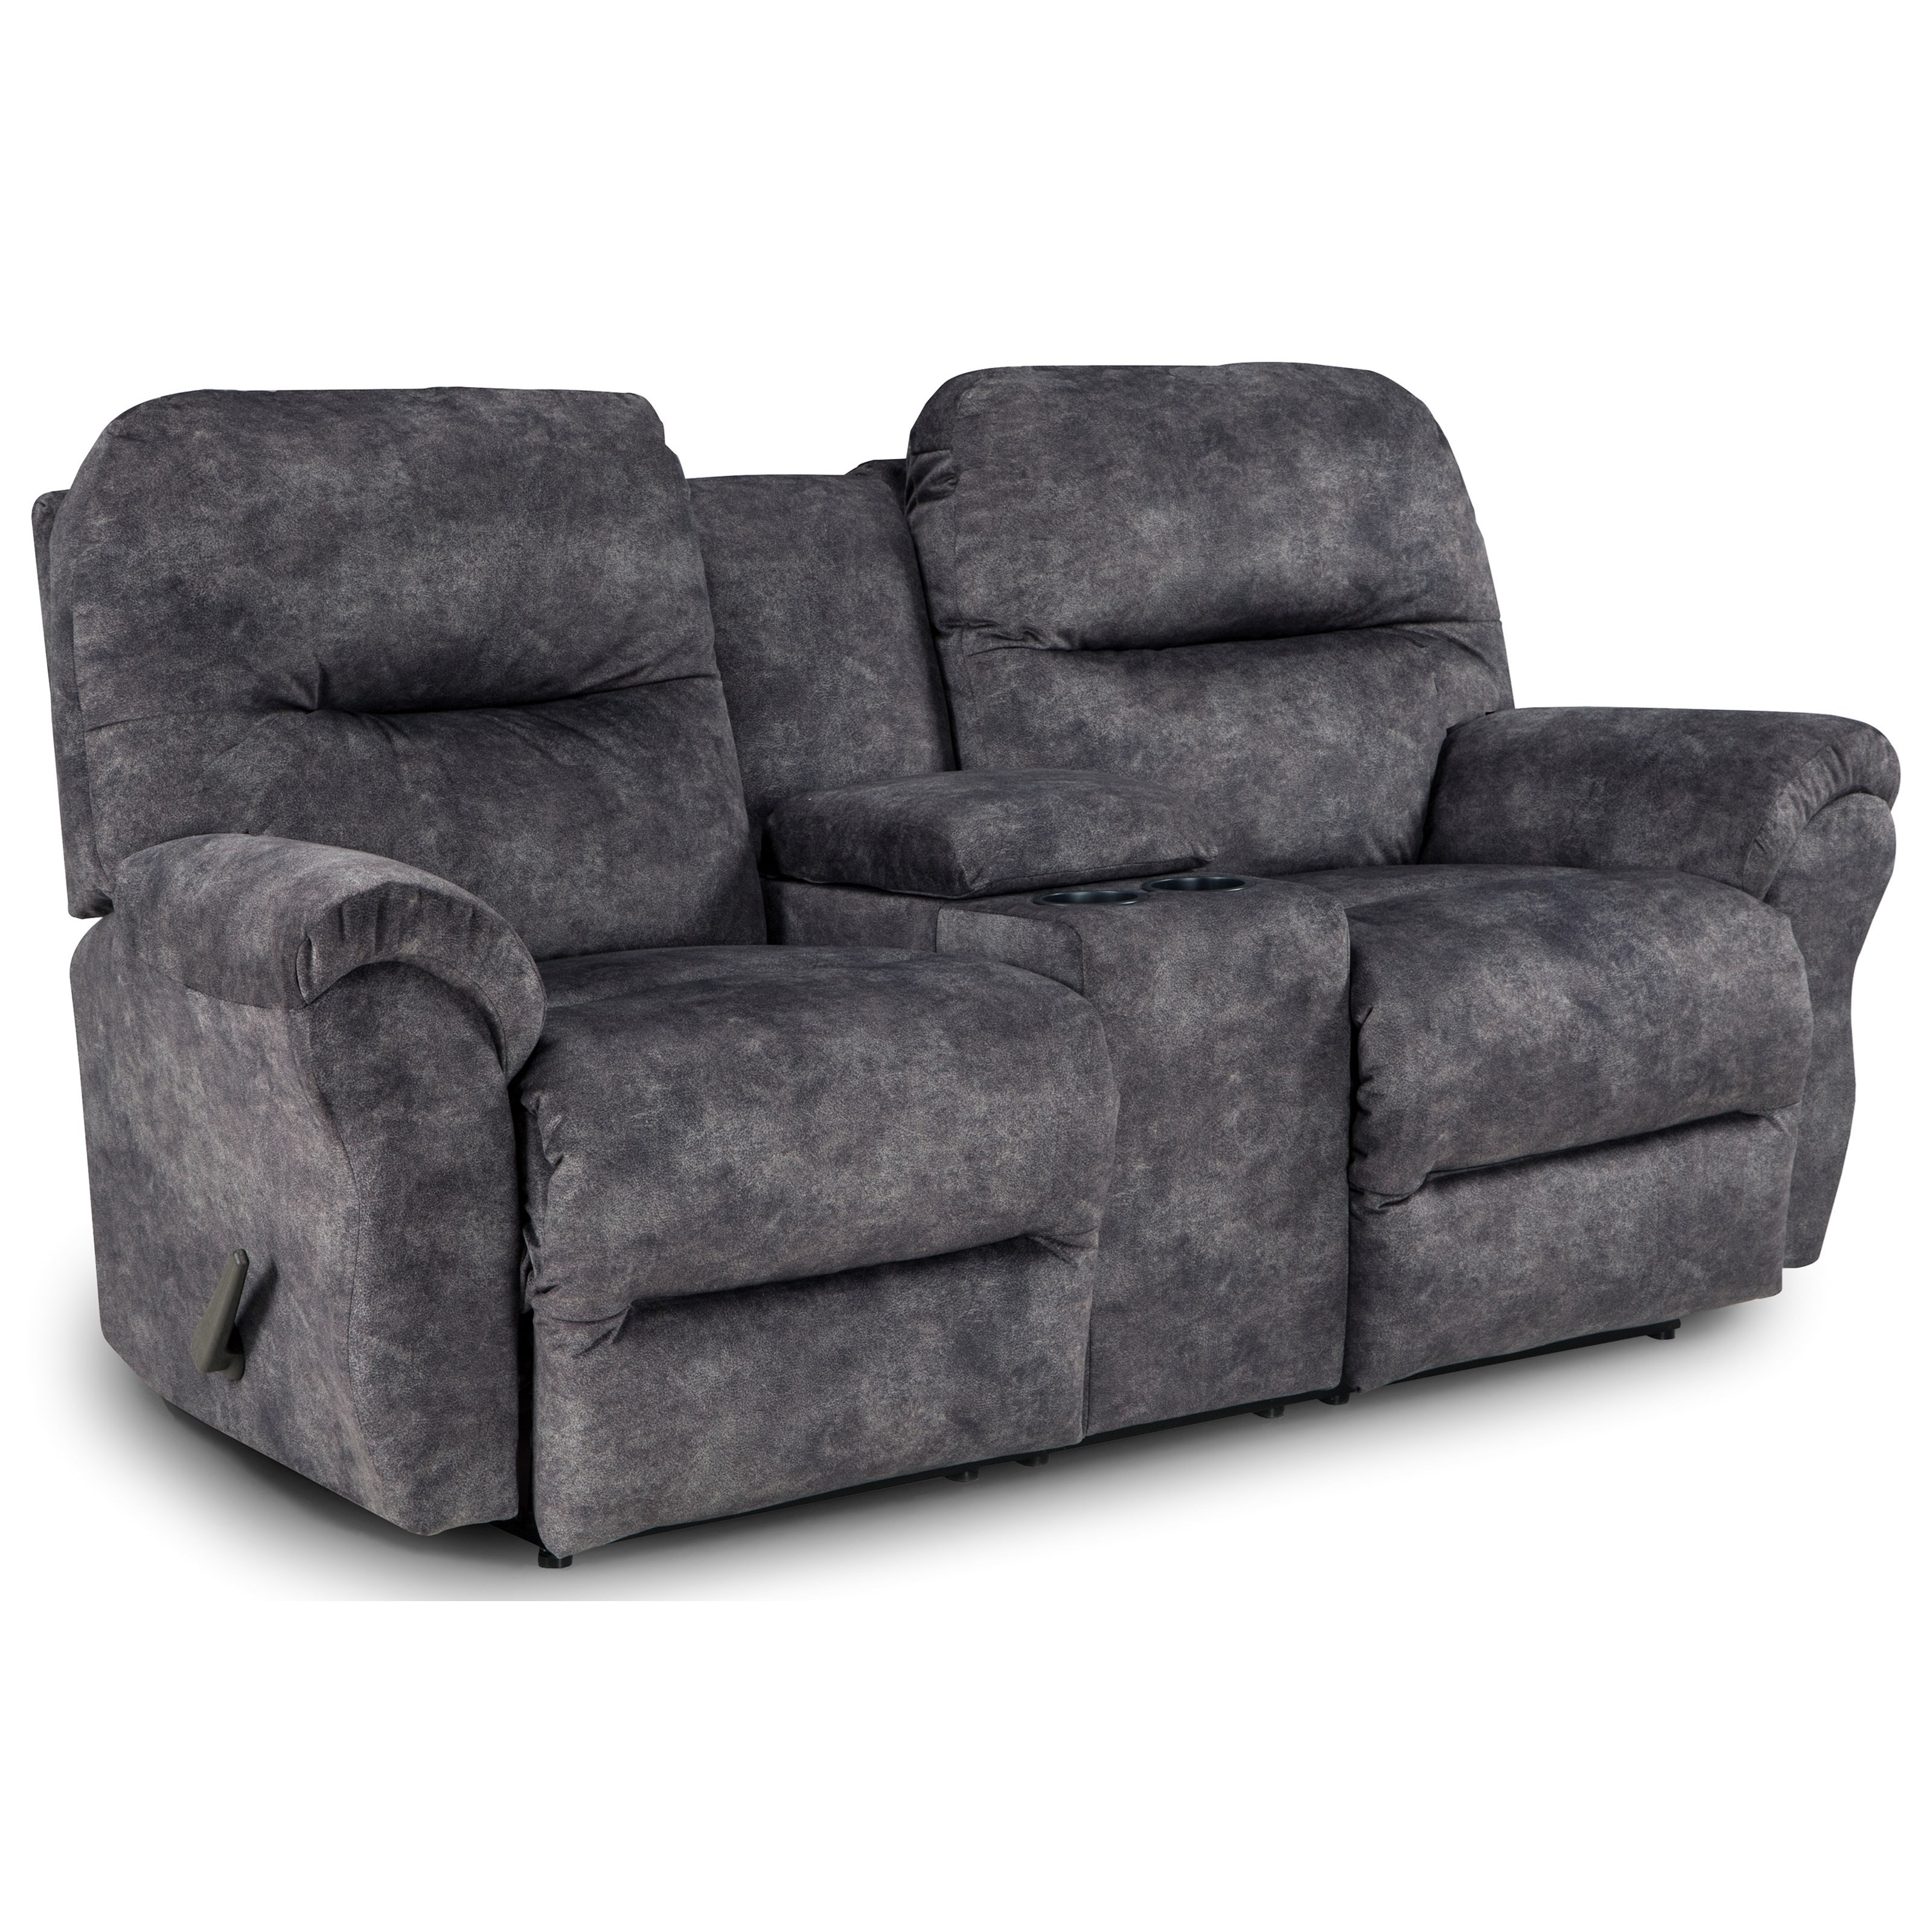 Bodie Rocking Reclining Loveseat w/ Console by Best Home Furnishings at Best Home Furnishings